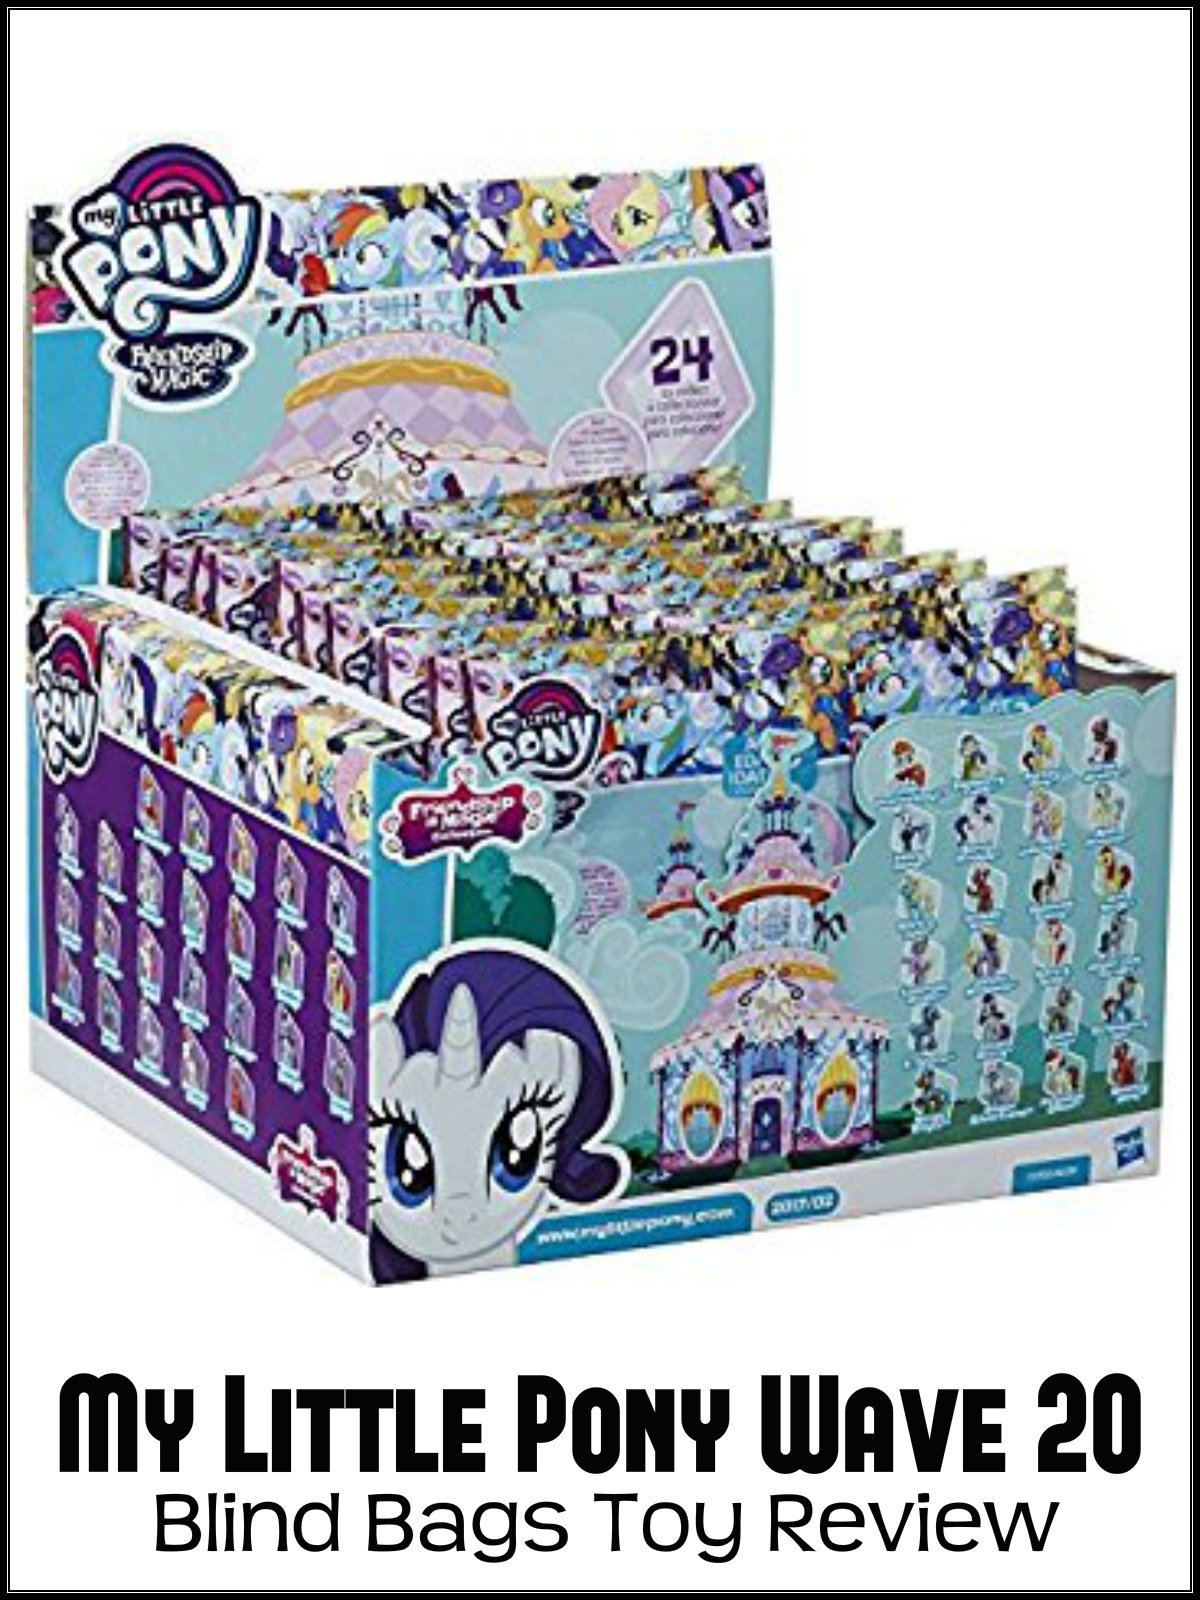 Review: My Little Pony Wave 20 Blind Bags Toy Review on Amazon Prime Video UK